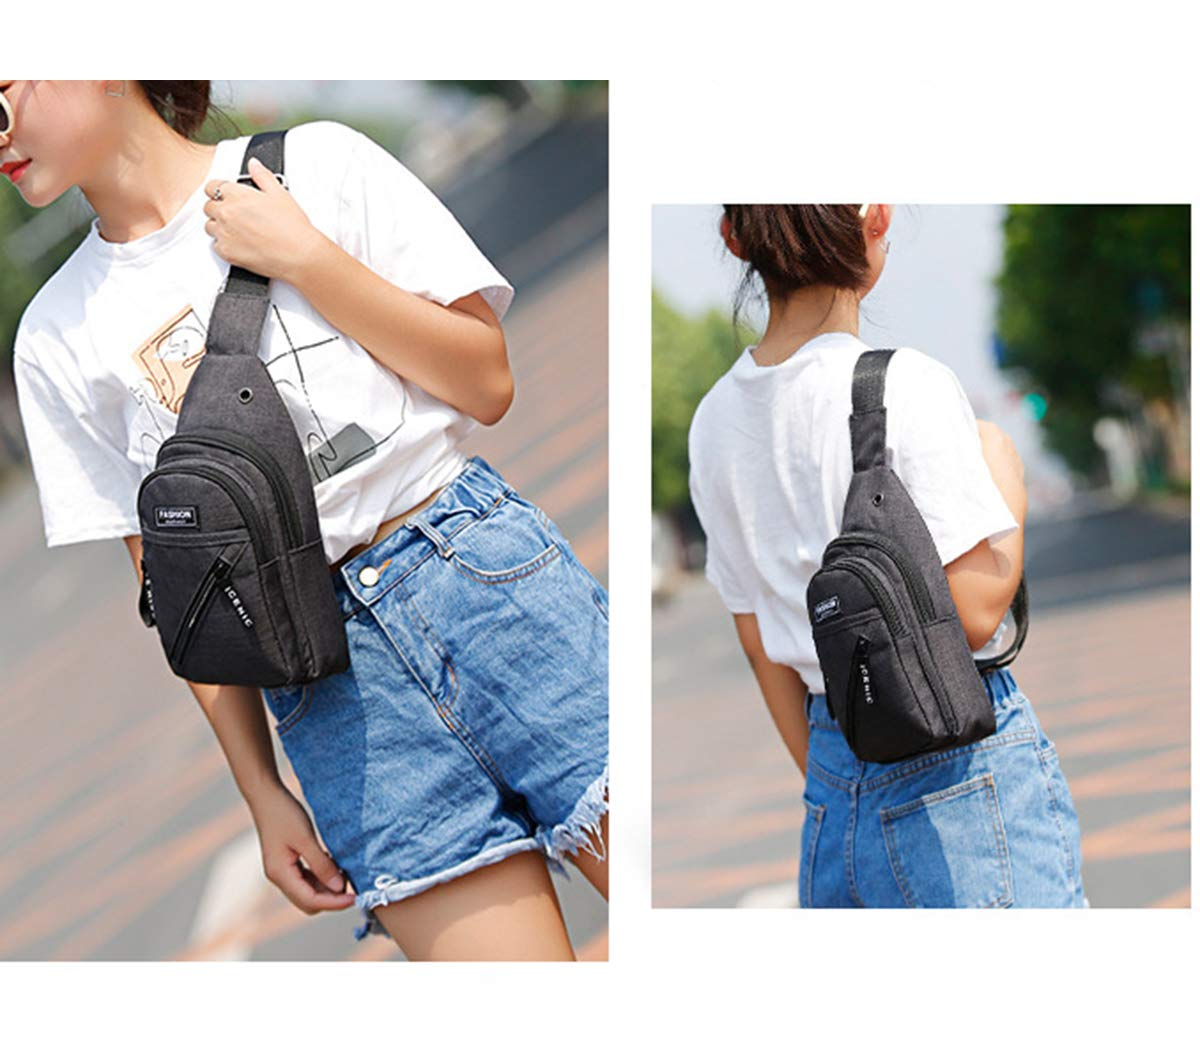 FUOE Sling Bag Crossbody Bag Shoulder Chest Back Pack Anti Theft Travel Bags (Style2-Black) by FUOE (Image #3)